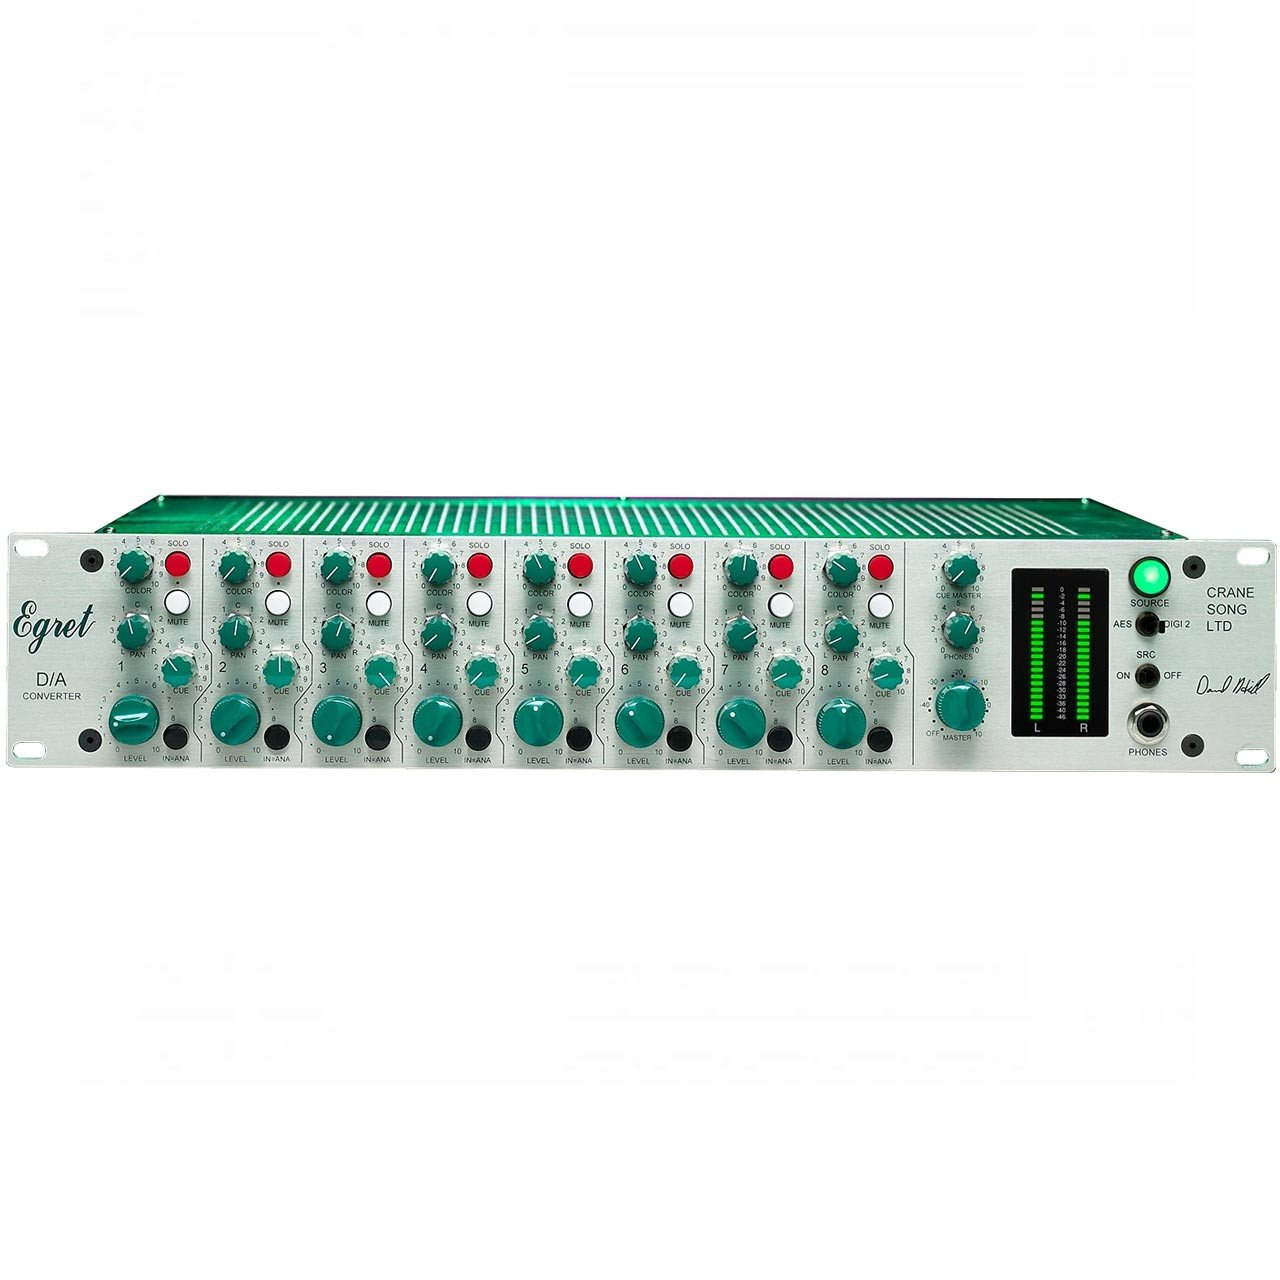 Summing Mixers - Crane Song Egret 8-Channel D/A Convertor And Summing Mixer